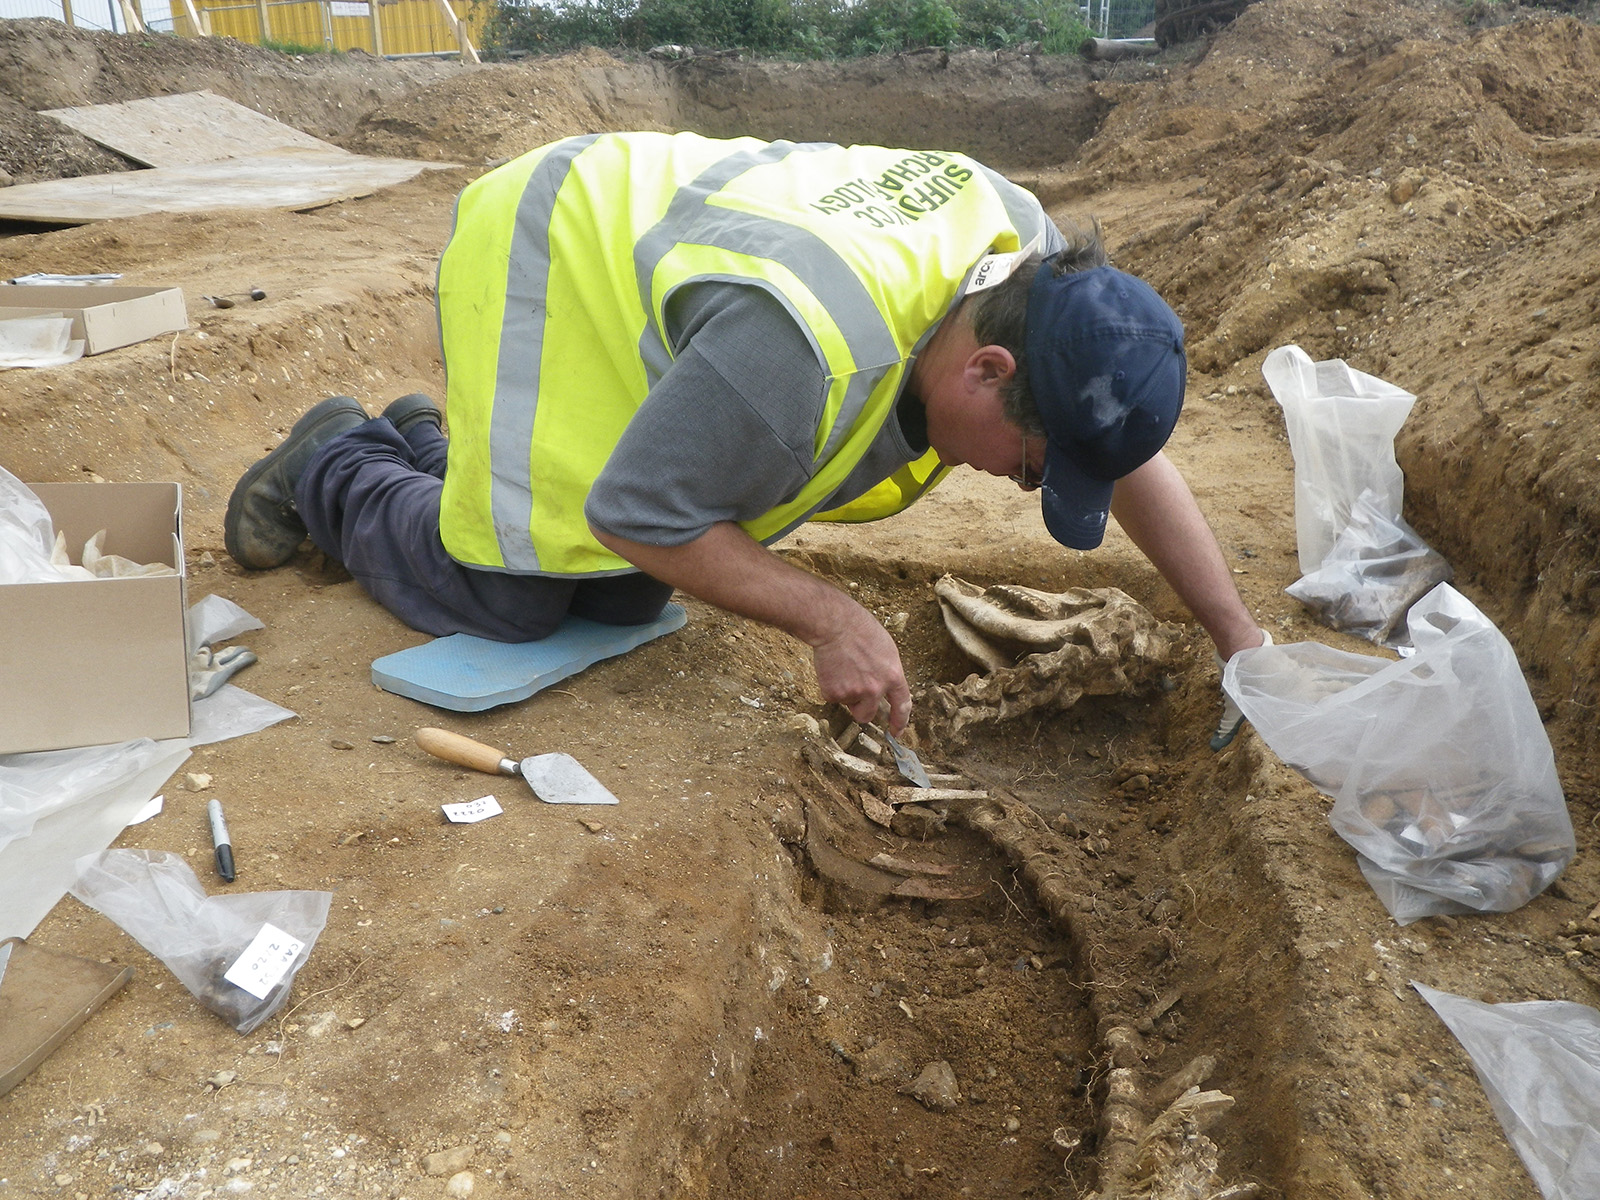 Excavating an animal burial at Campsea Ashe, Suffolk